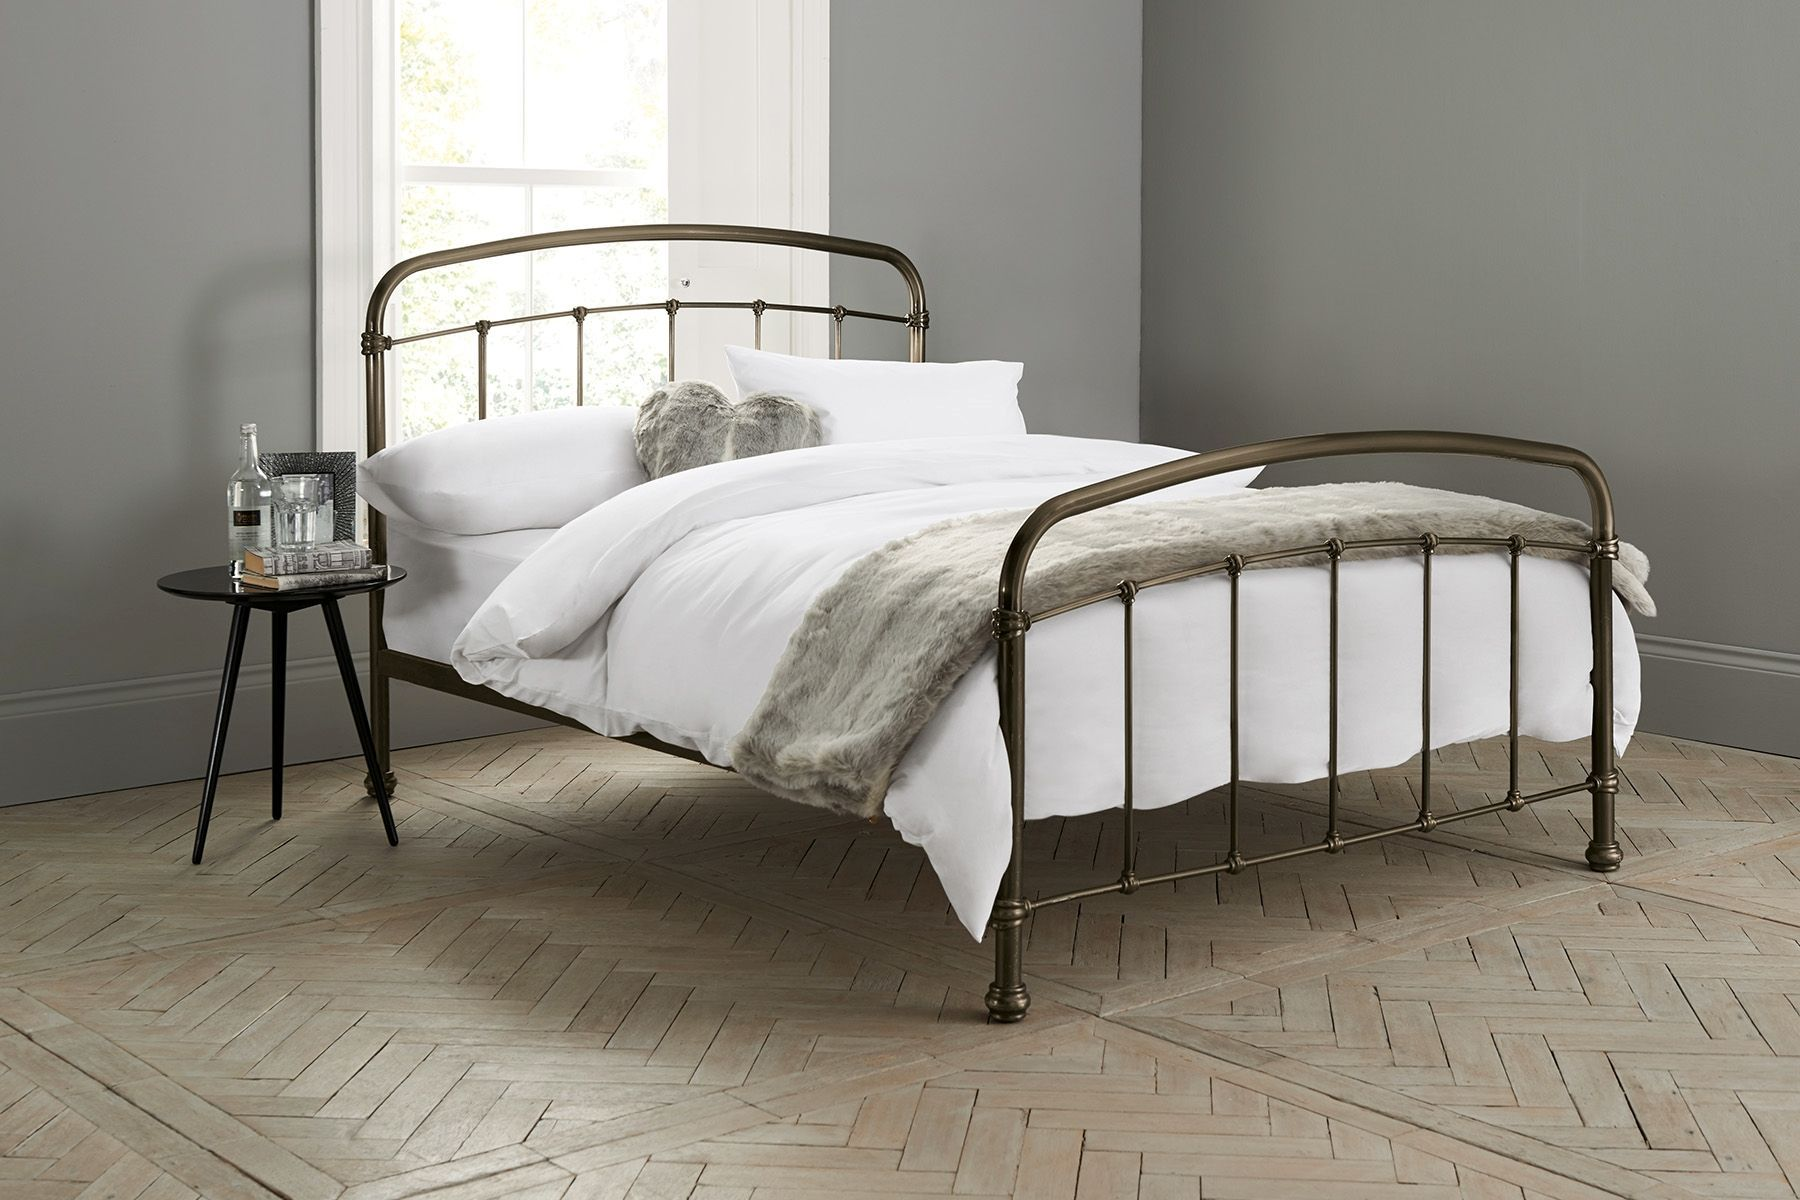 Master bedroom king bed Pin by Edward Hill on Beds  Pinterest  Bedrooms